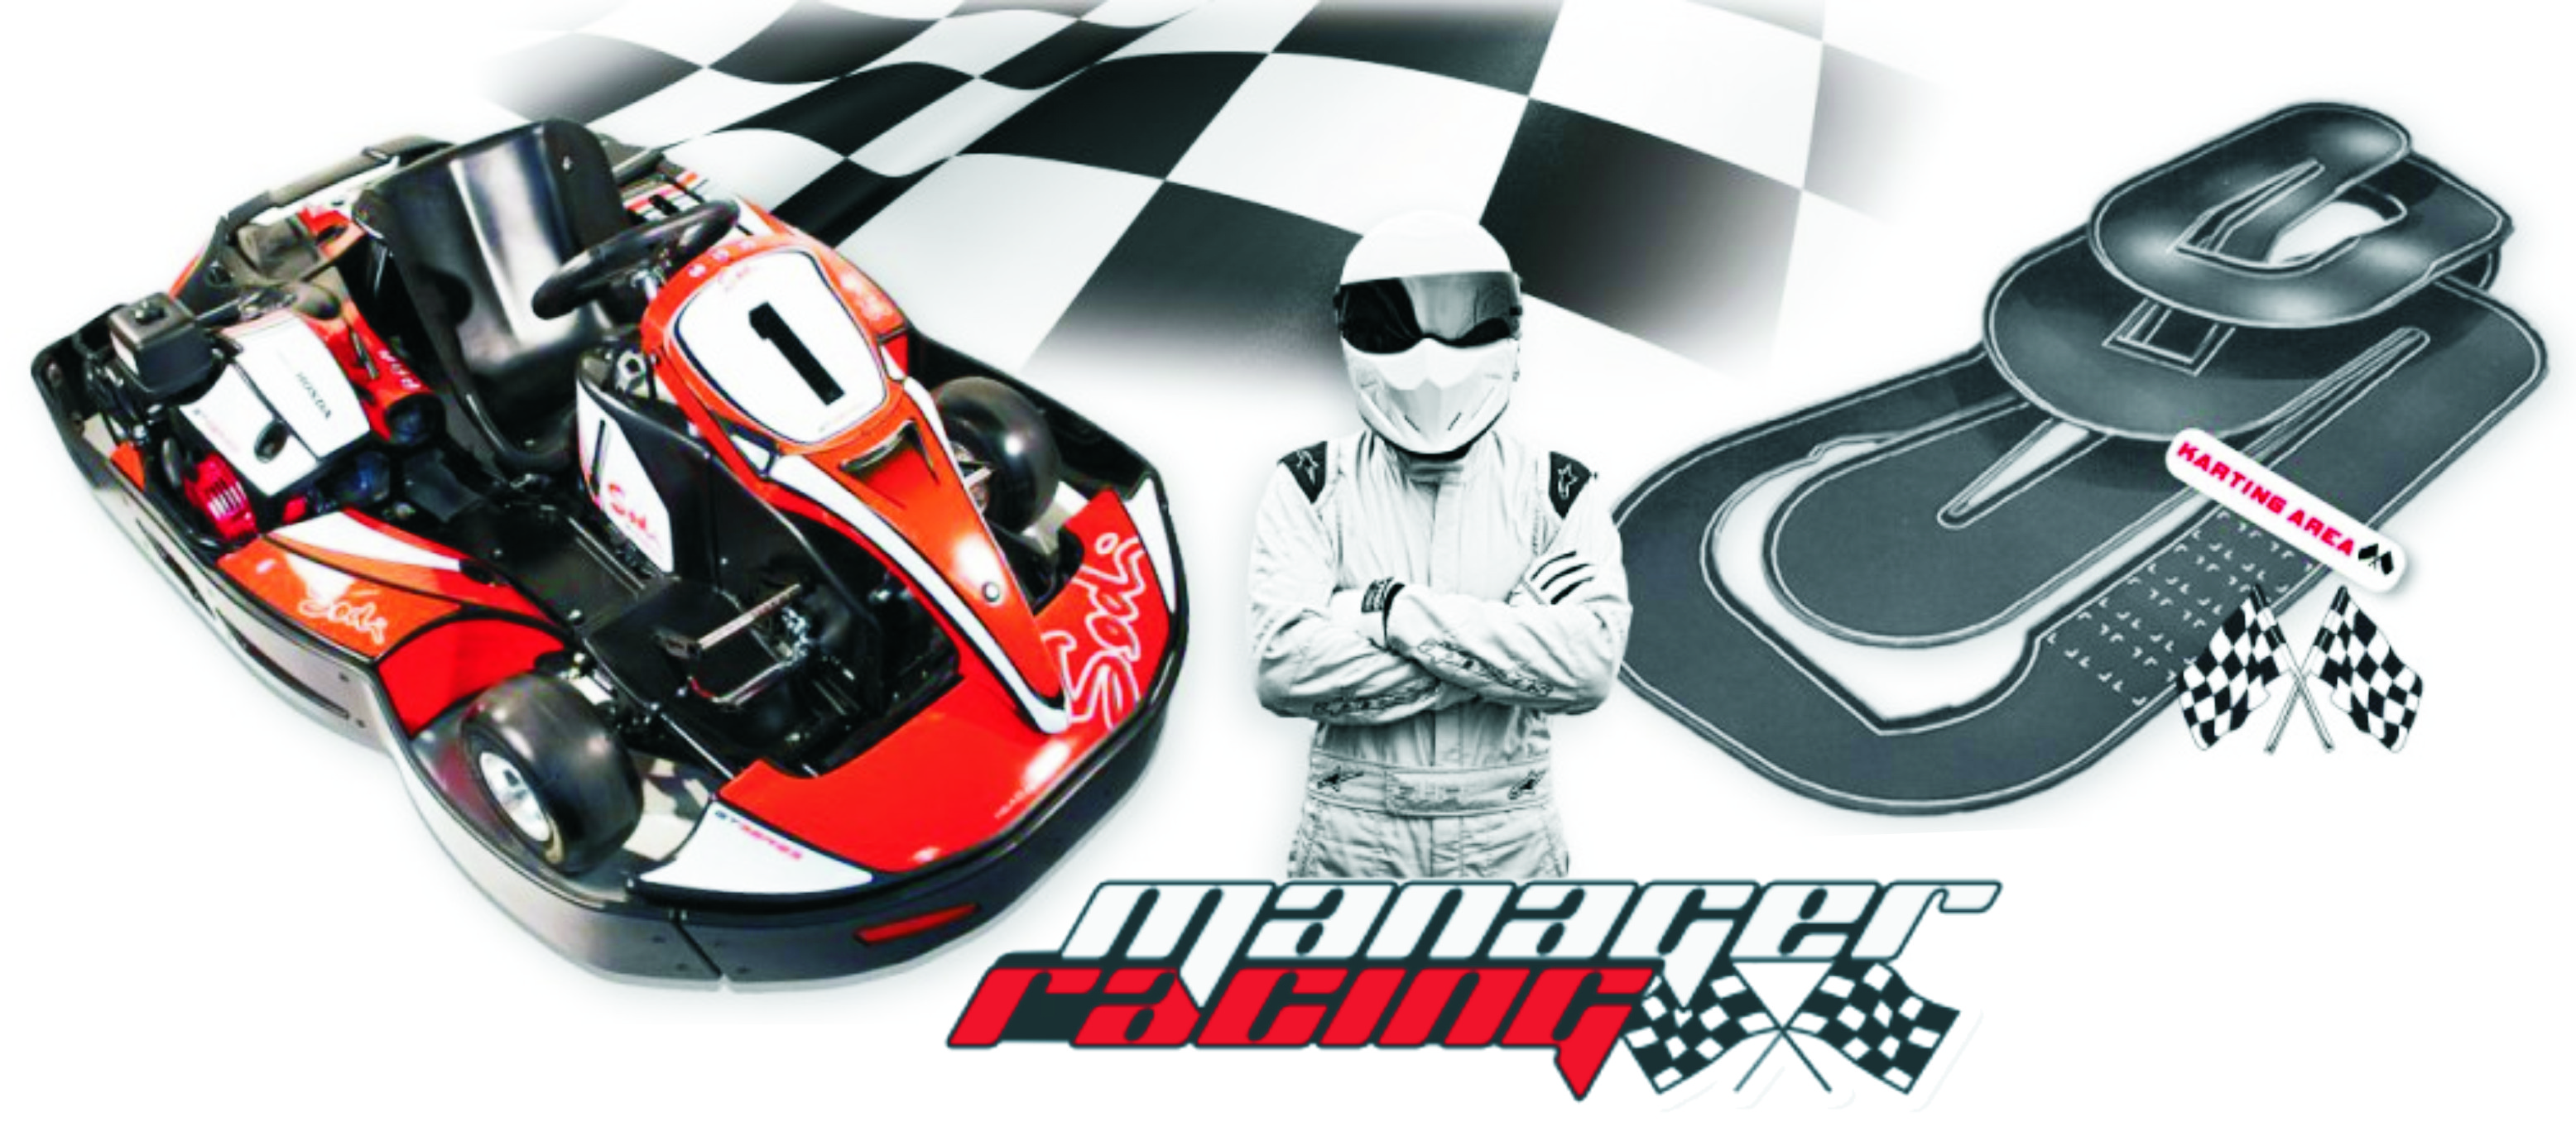 MANAGER RACING I Multi-activity calendar I  KARTING AREA